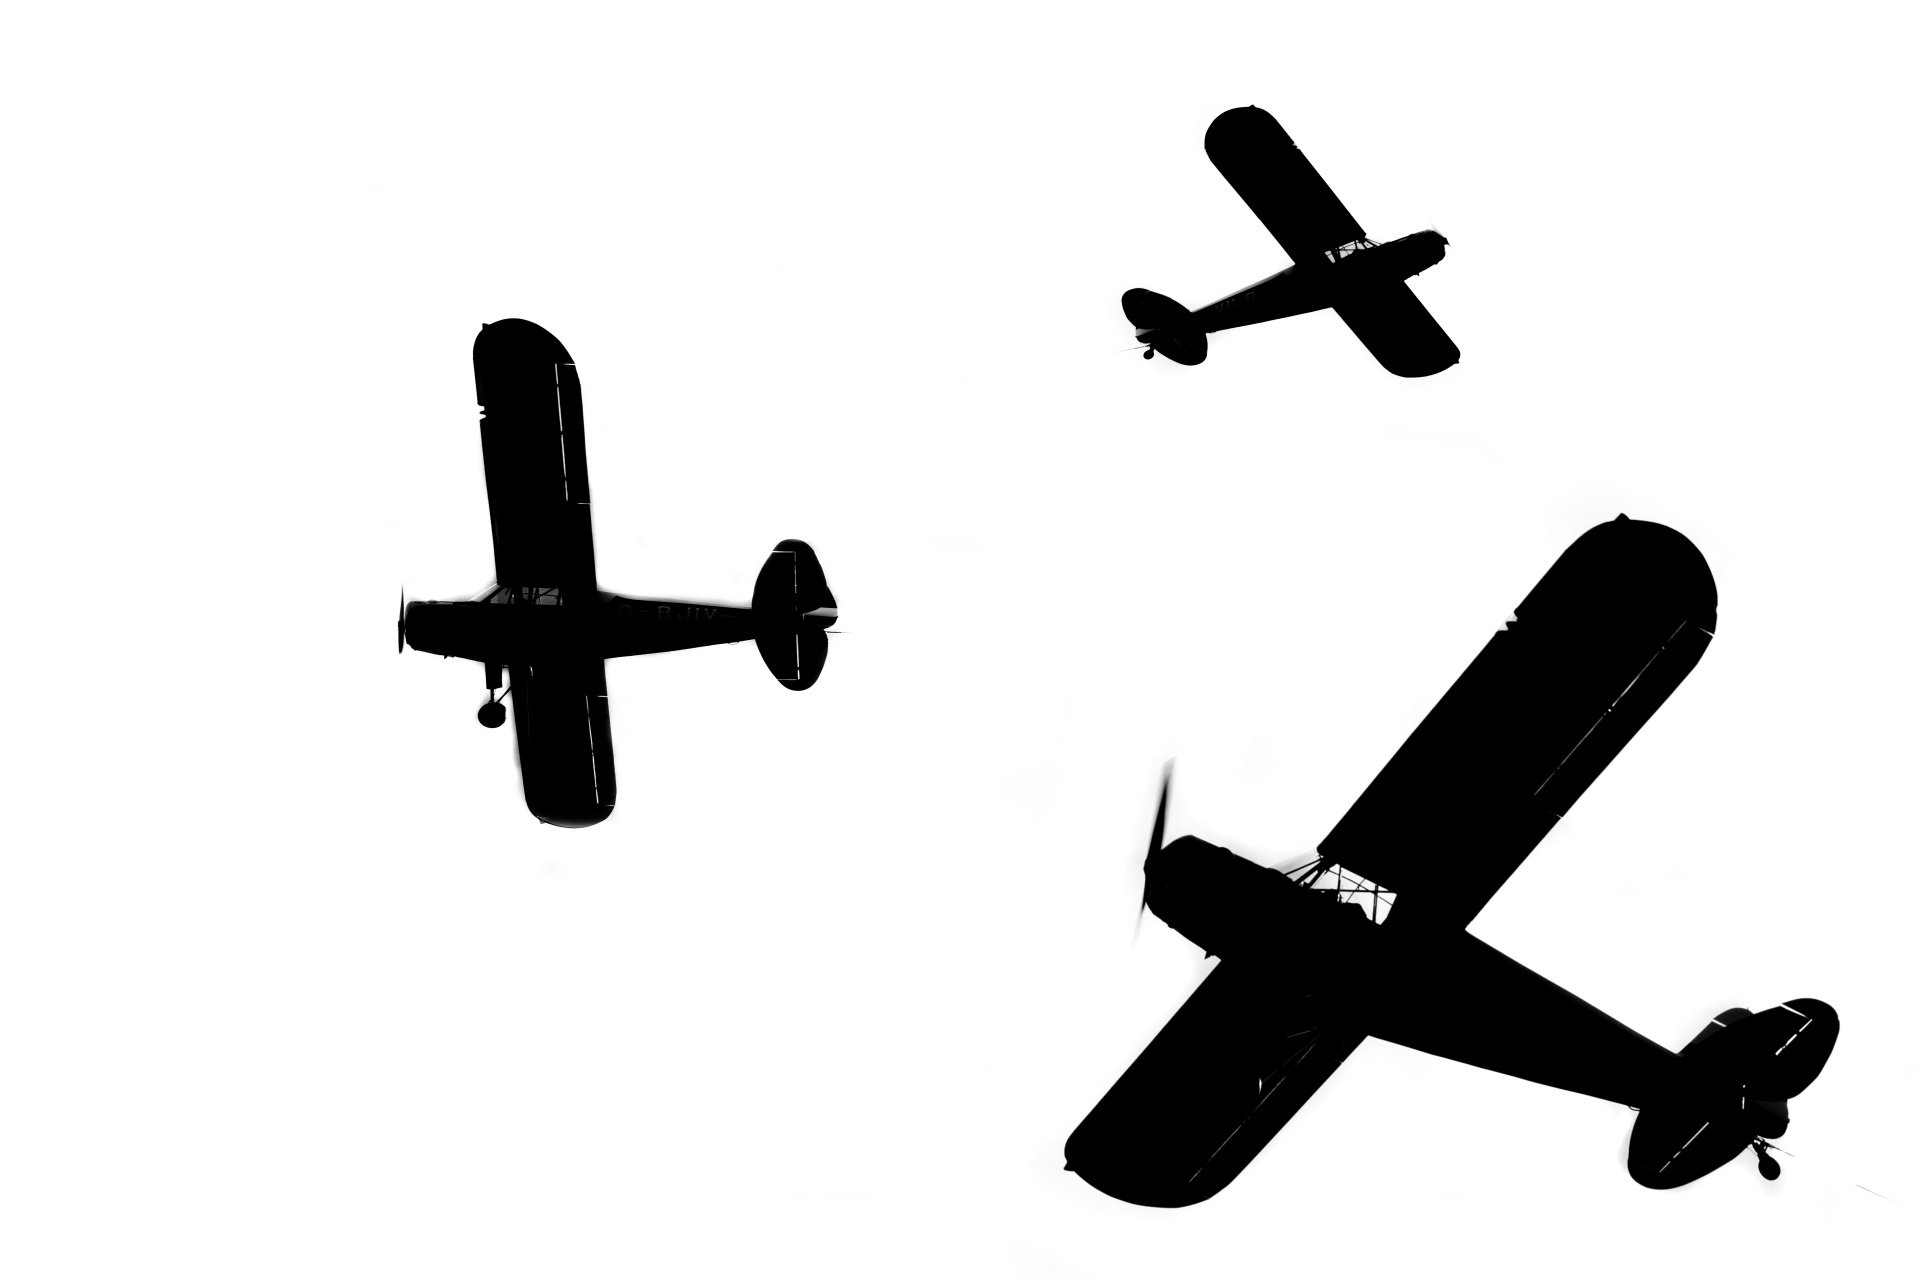 1920x1280 Silhouette Of A Light Airplane Free Stock Photo